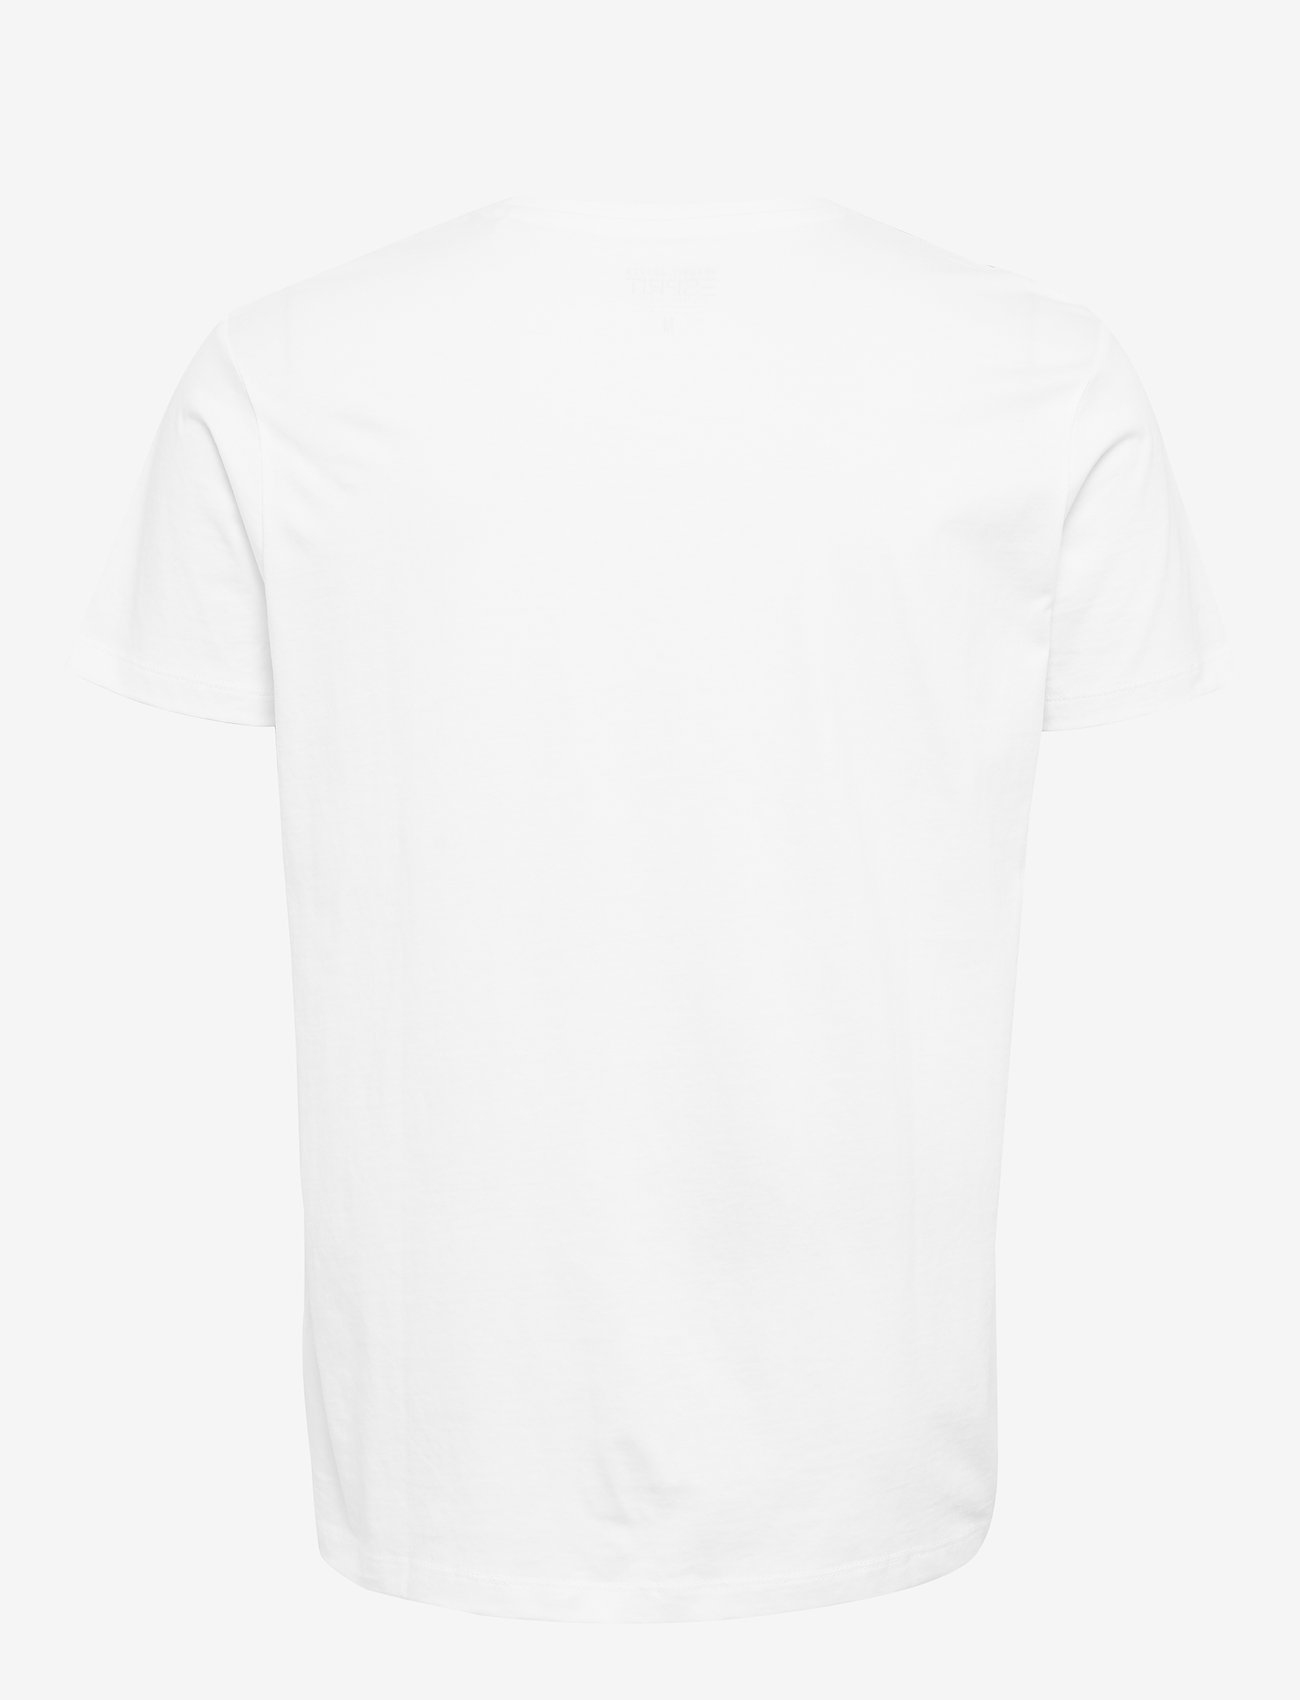 Esprit Casual - T-Shirts - short-sleeved t-shirts - white - 1